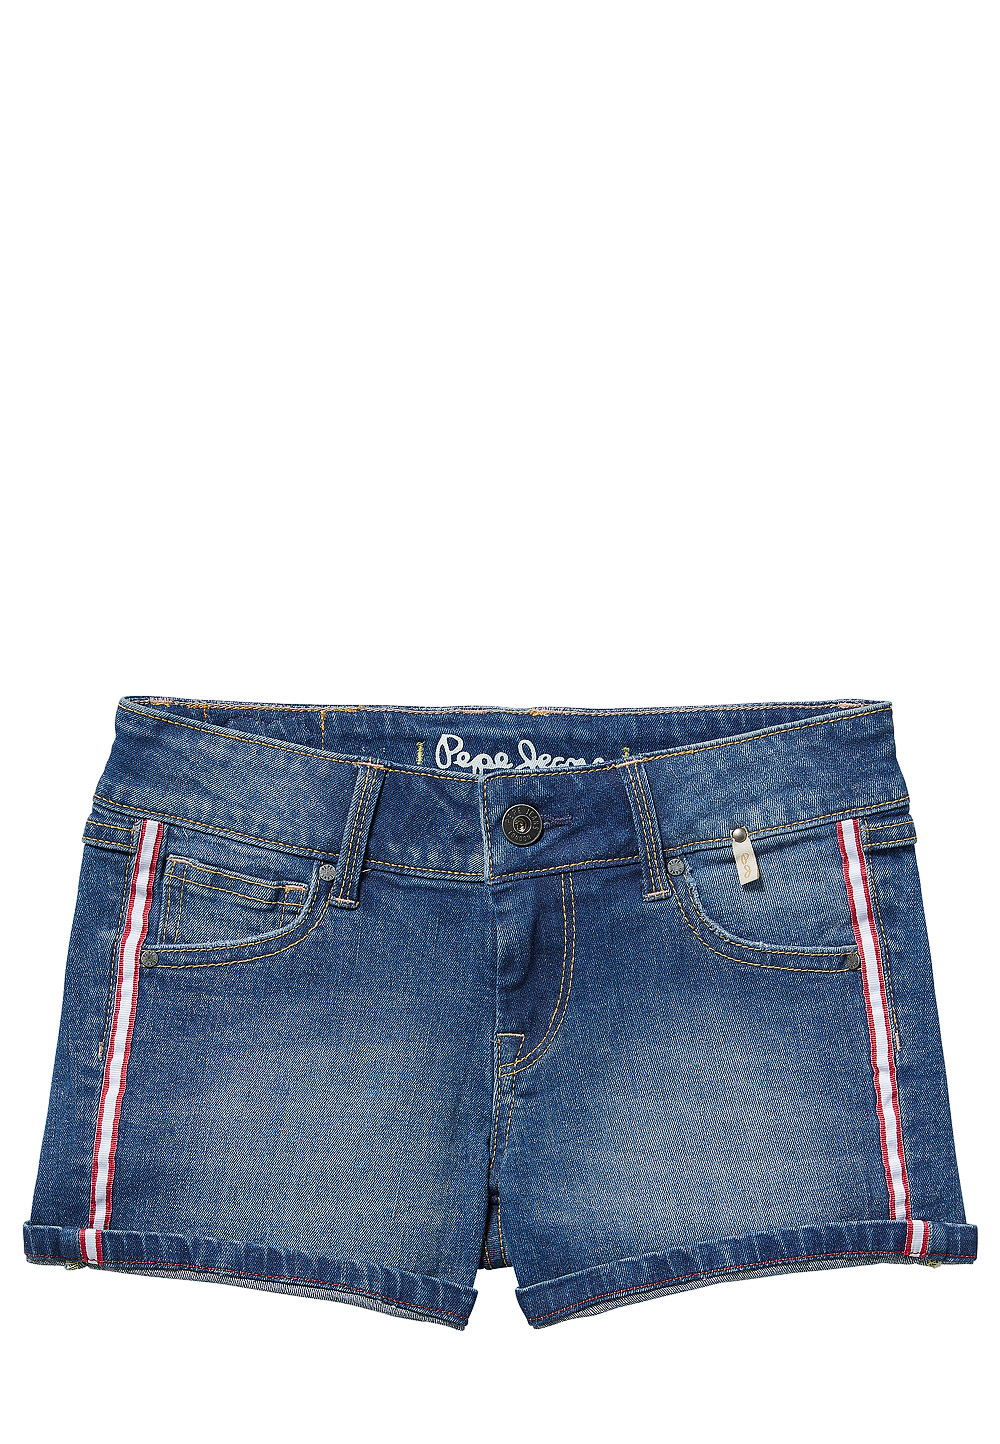 Pepe Jeans Jeans-Shorts blau | Bekleidung > Shorts & Bermudas > Jeans Shorts | Blau | Jeans | Pepe Jeans